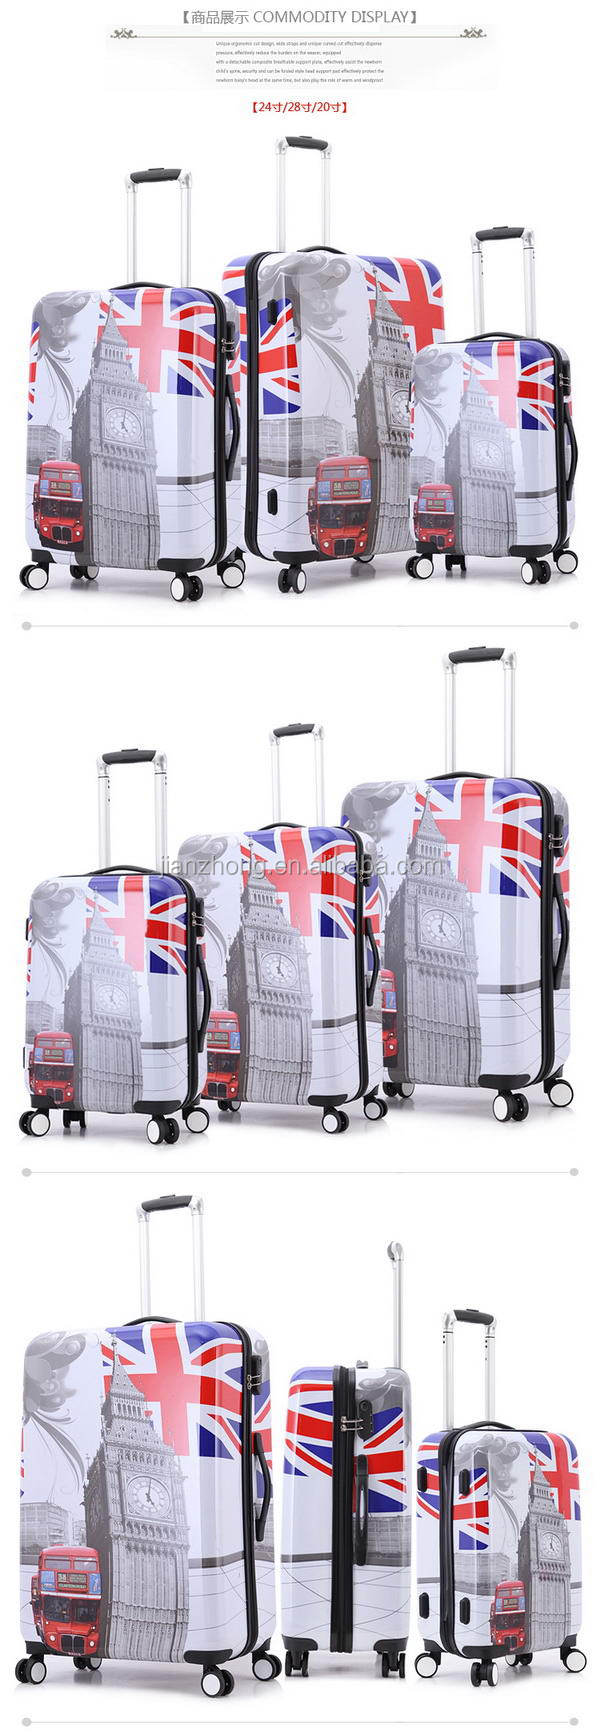 PCABS luggage 40 PC zipper(xjt)02